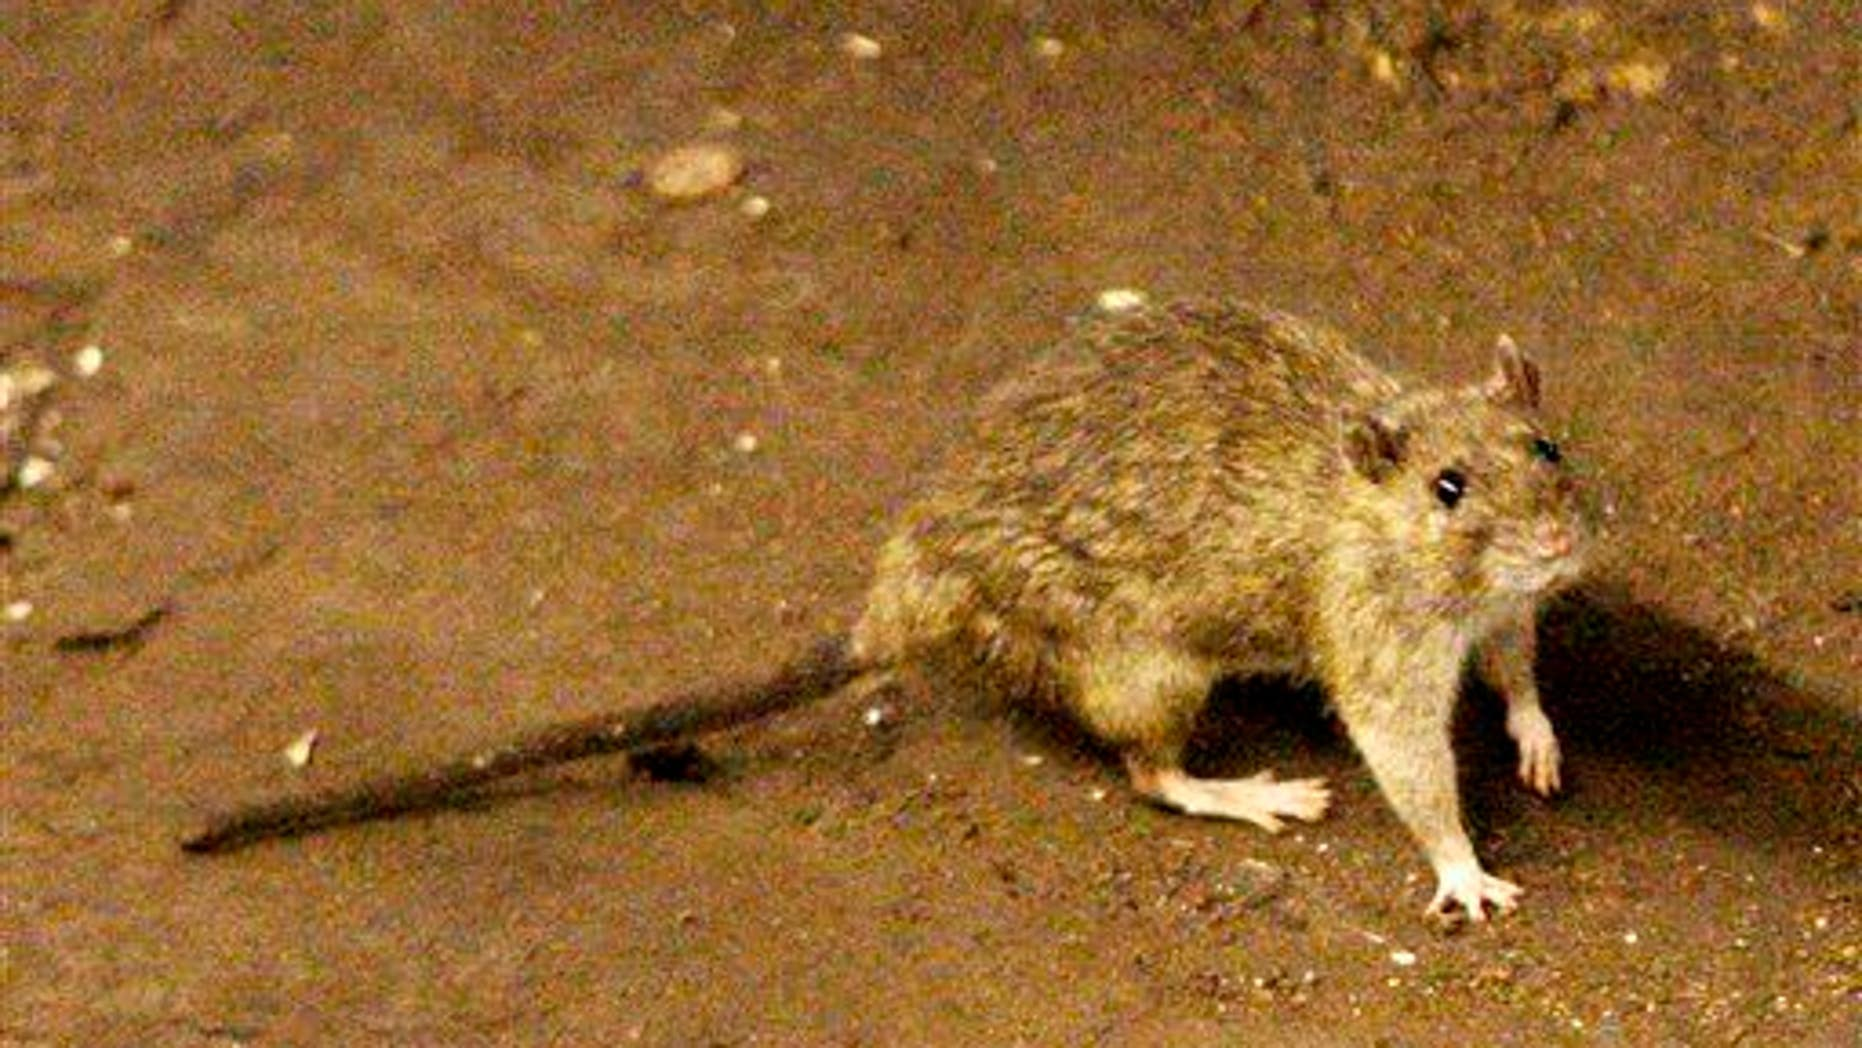 In this June 15, 2010 file photo, a rat moves along the ground near the subway tracks at Union Square in New York.